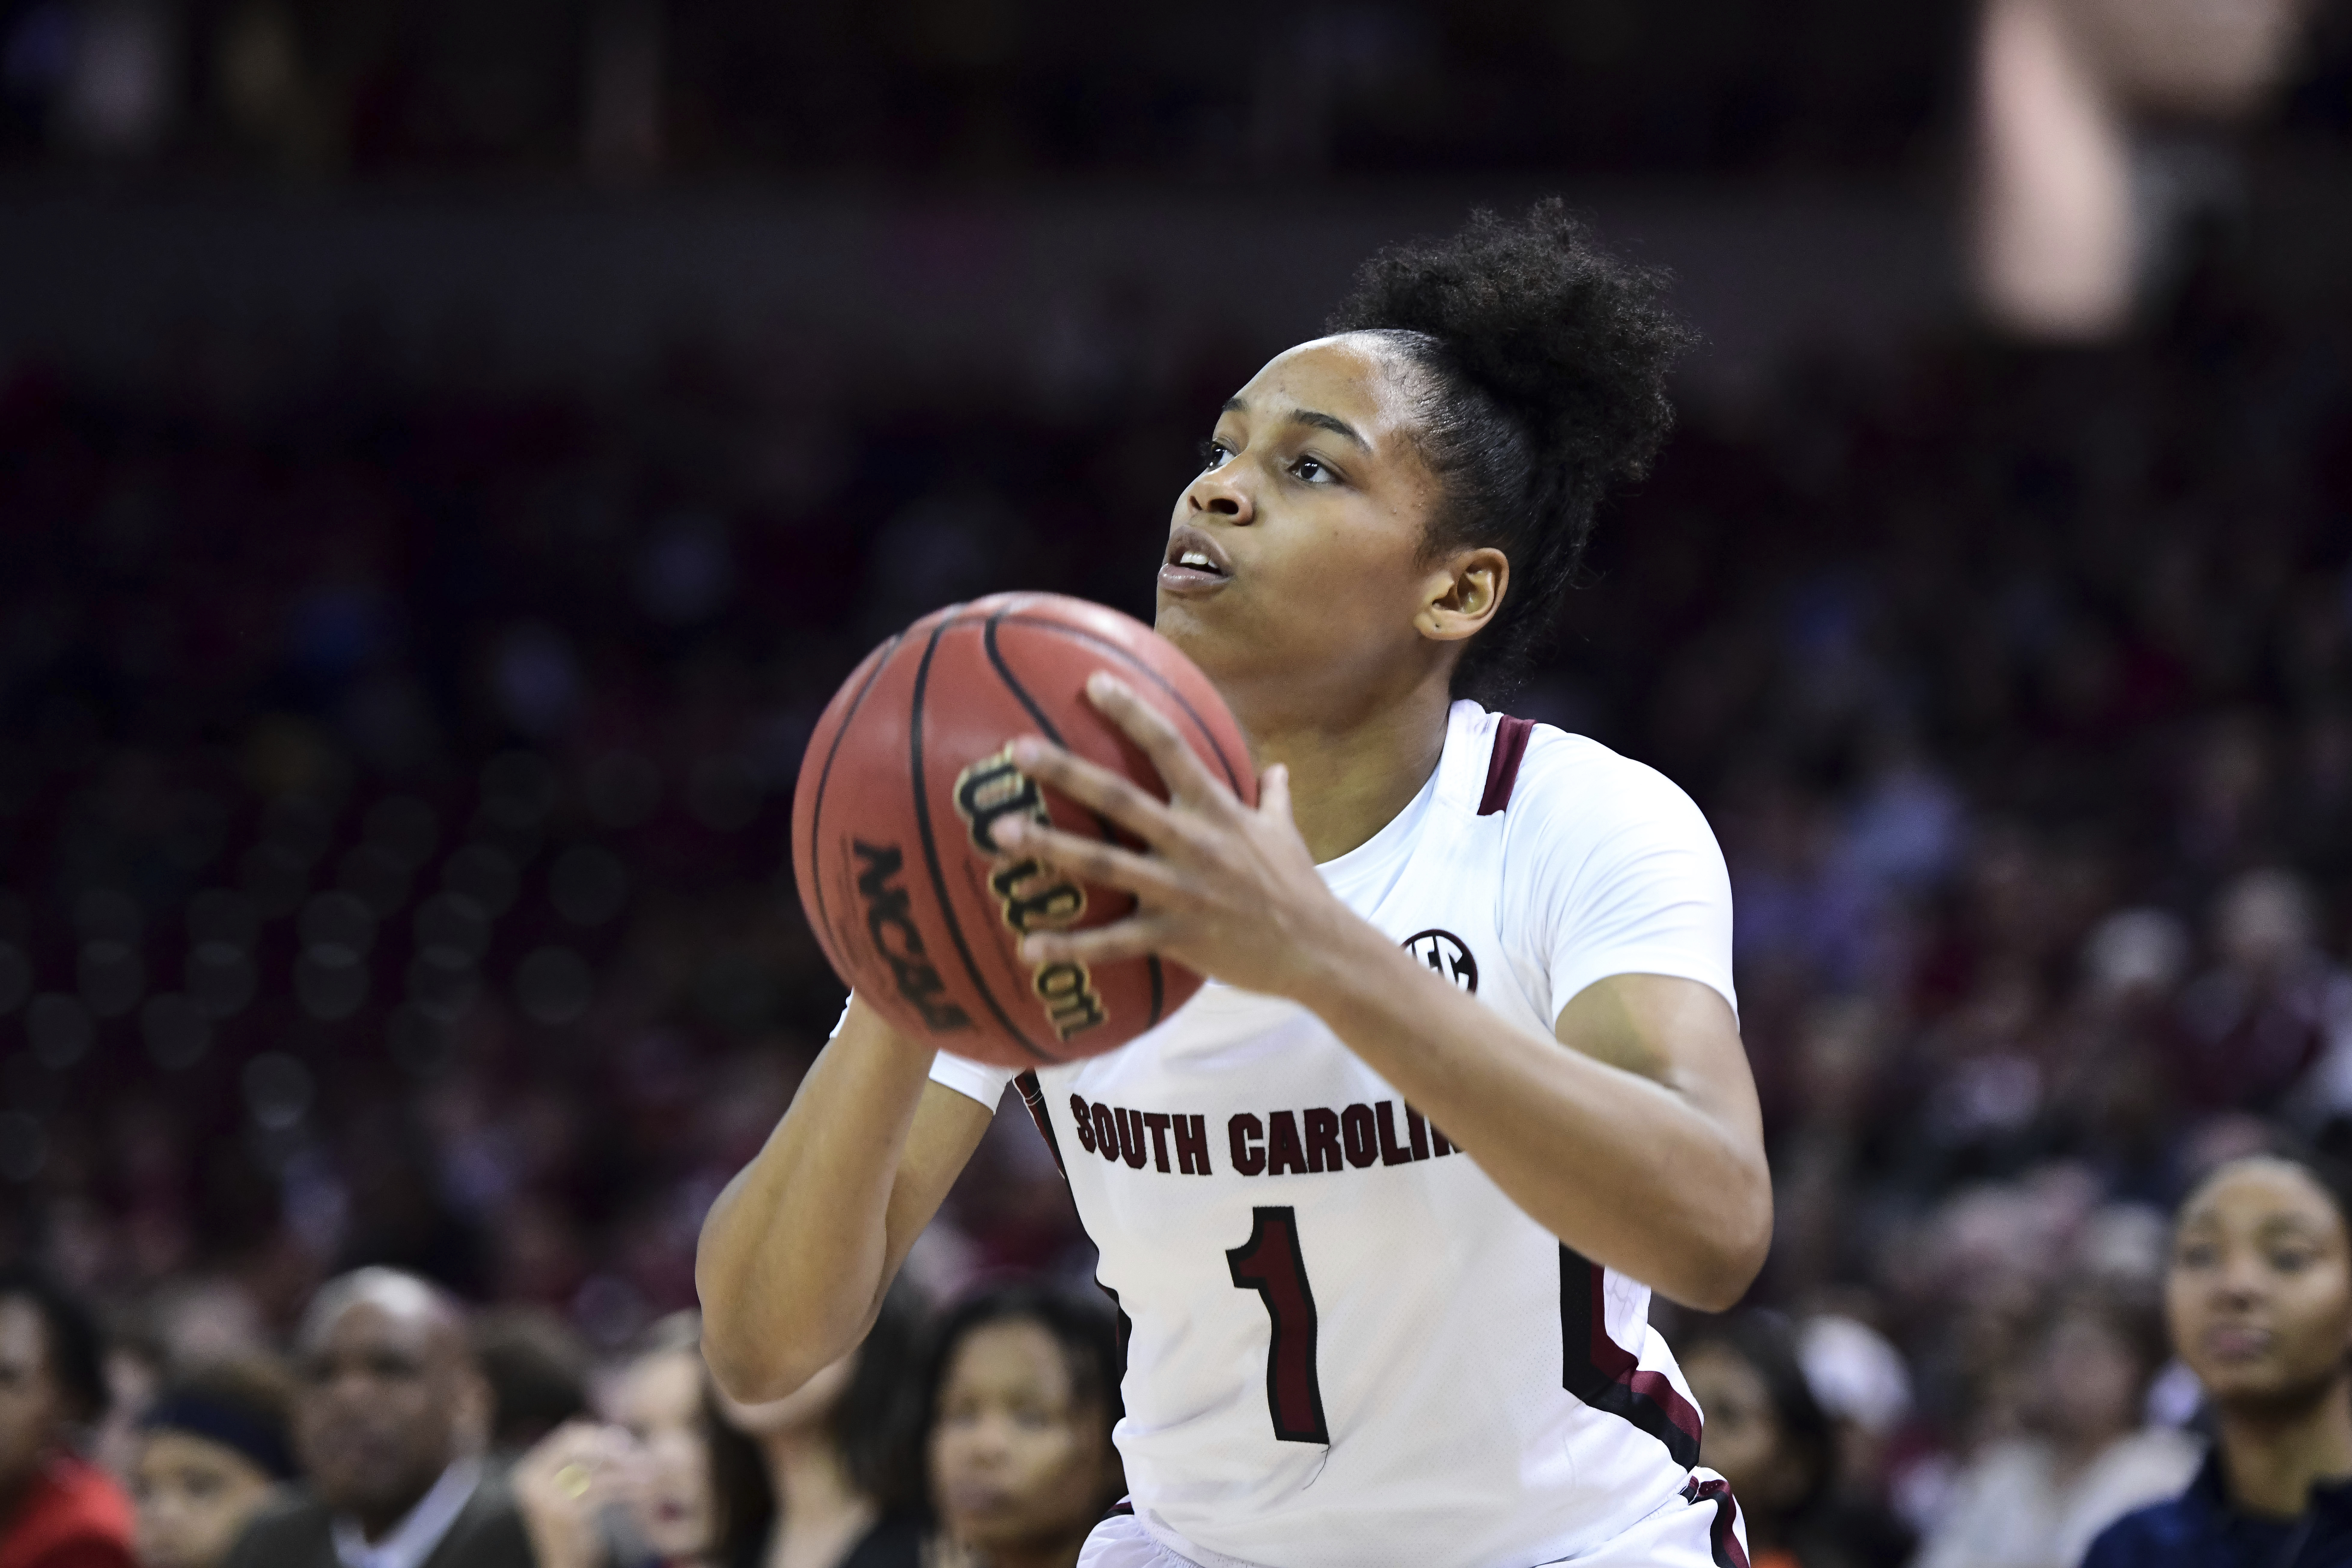 Boston, Cooke lead No. 1 South Carolina past Auburn 79-53